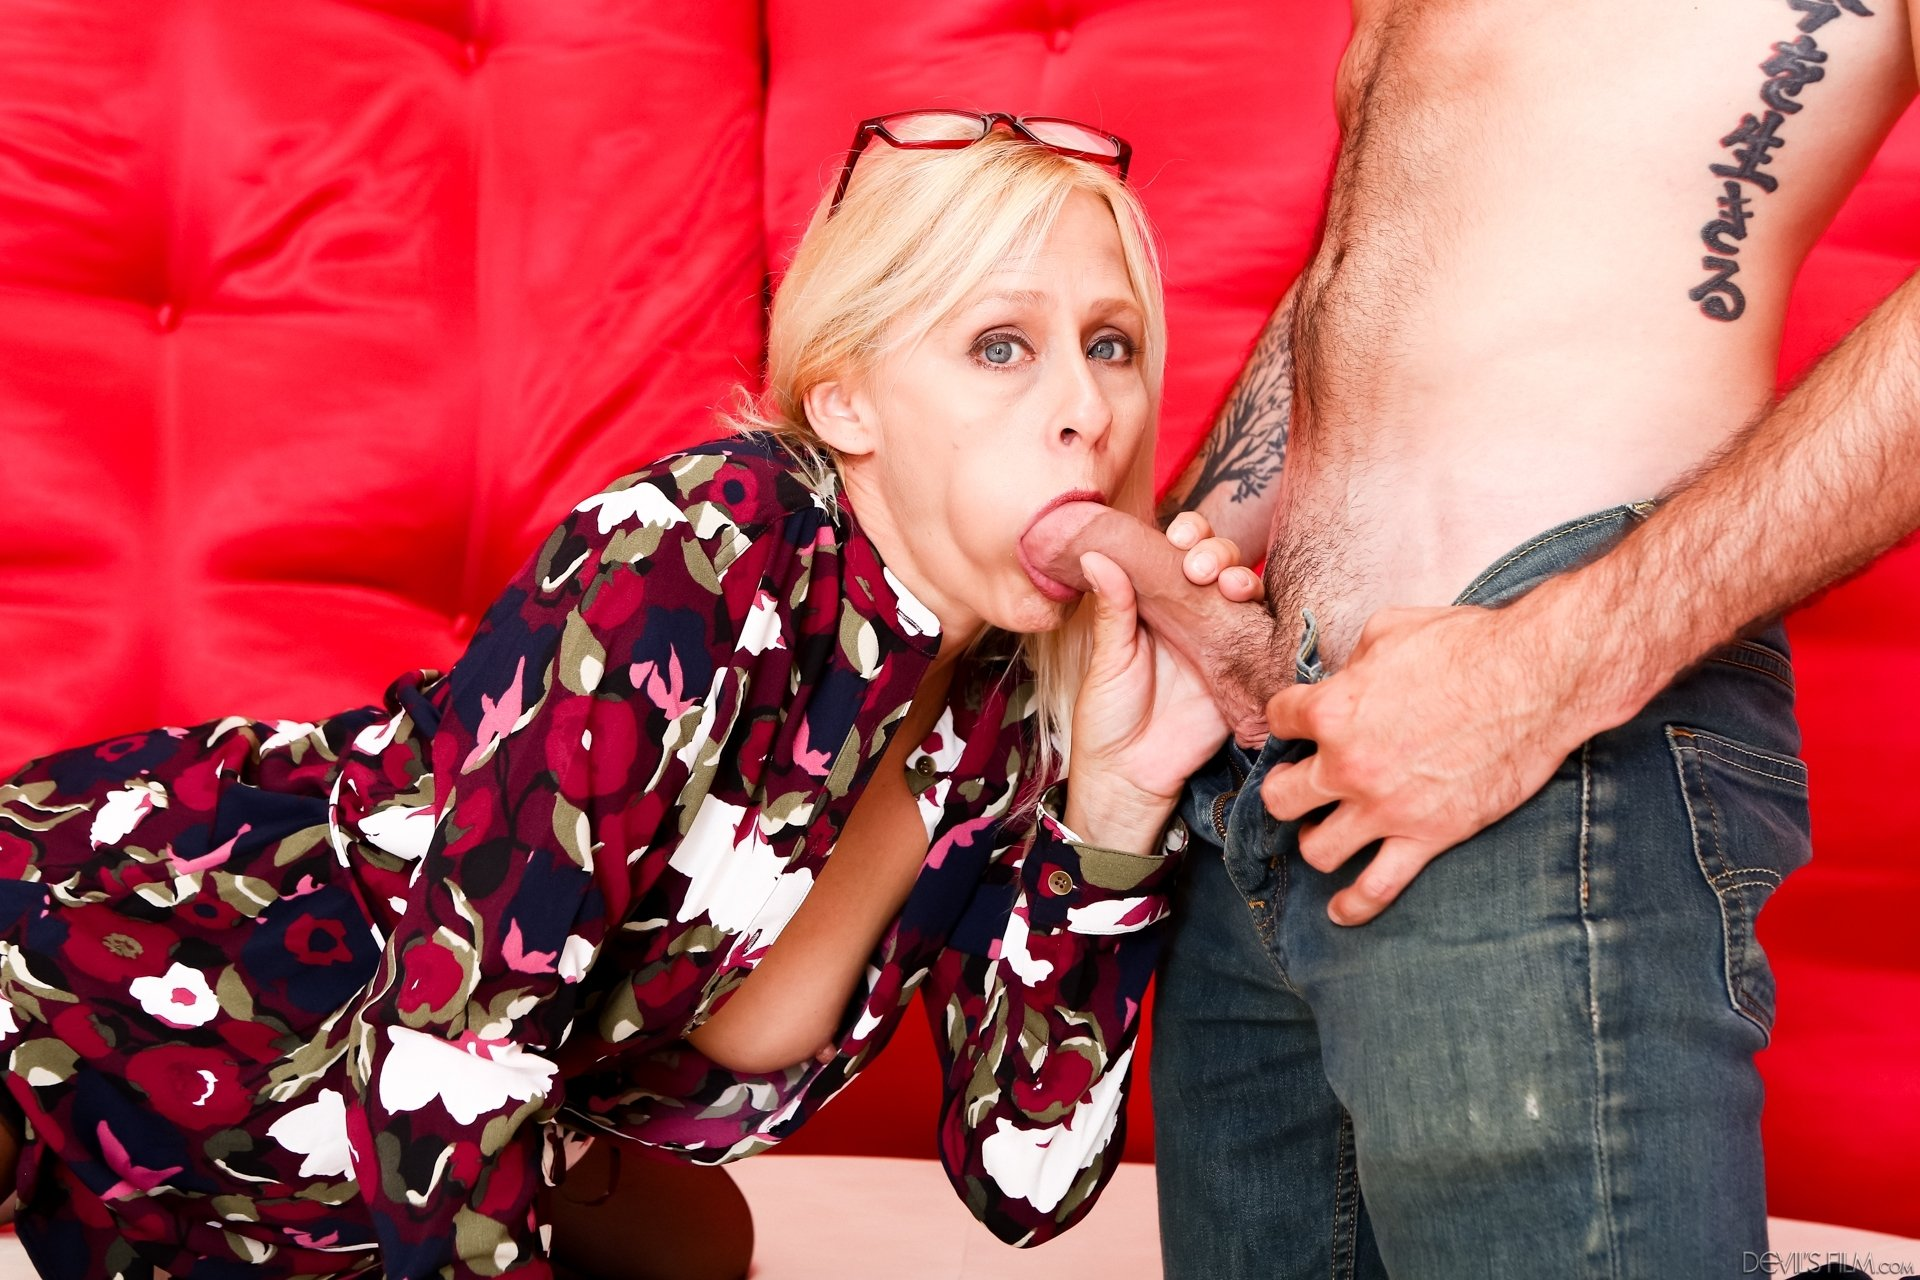 Perfect milf porn hd Amatuer sexy home made videos